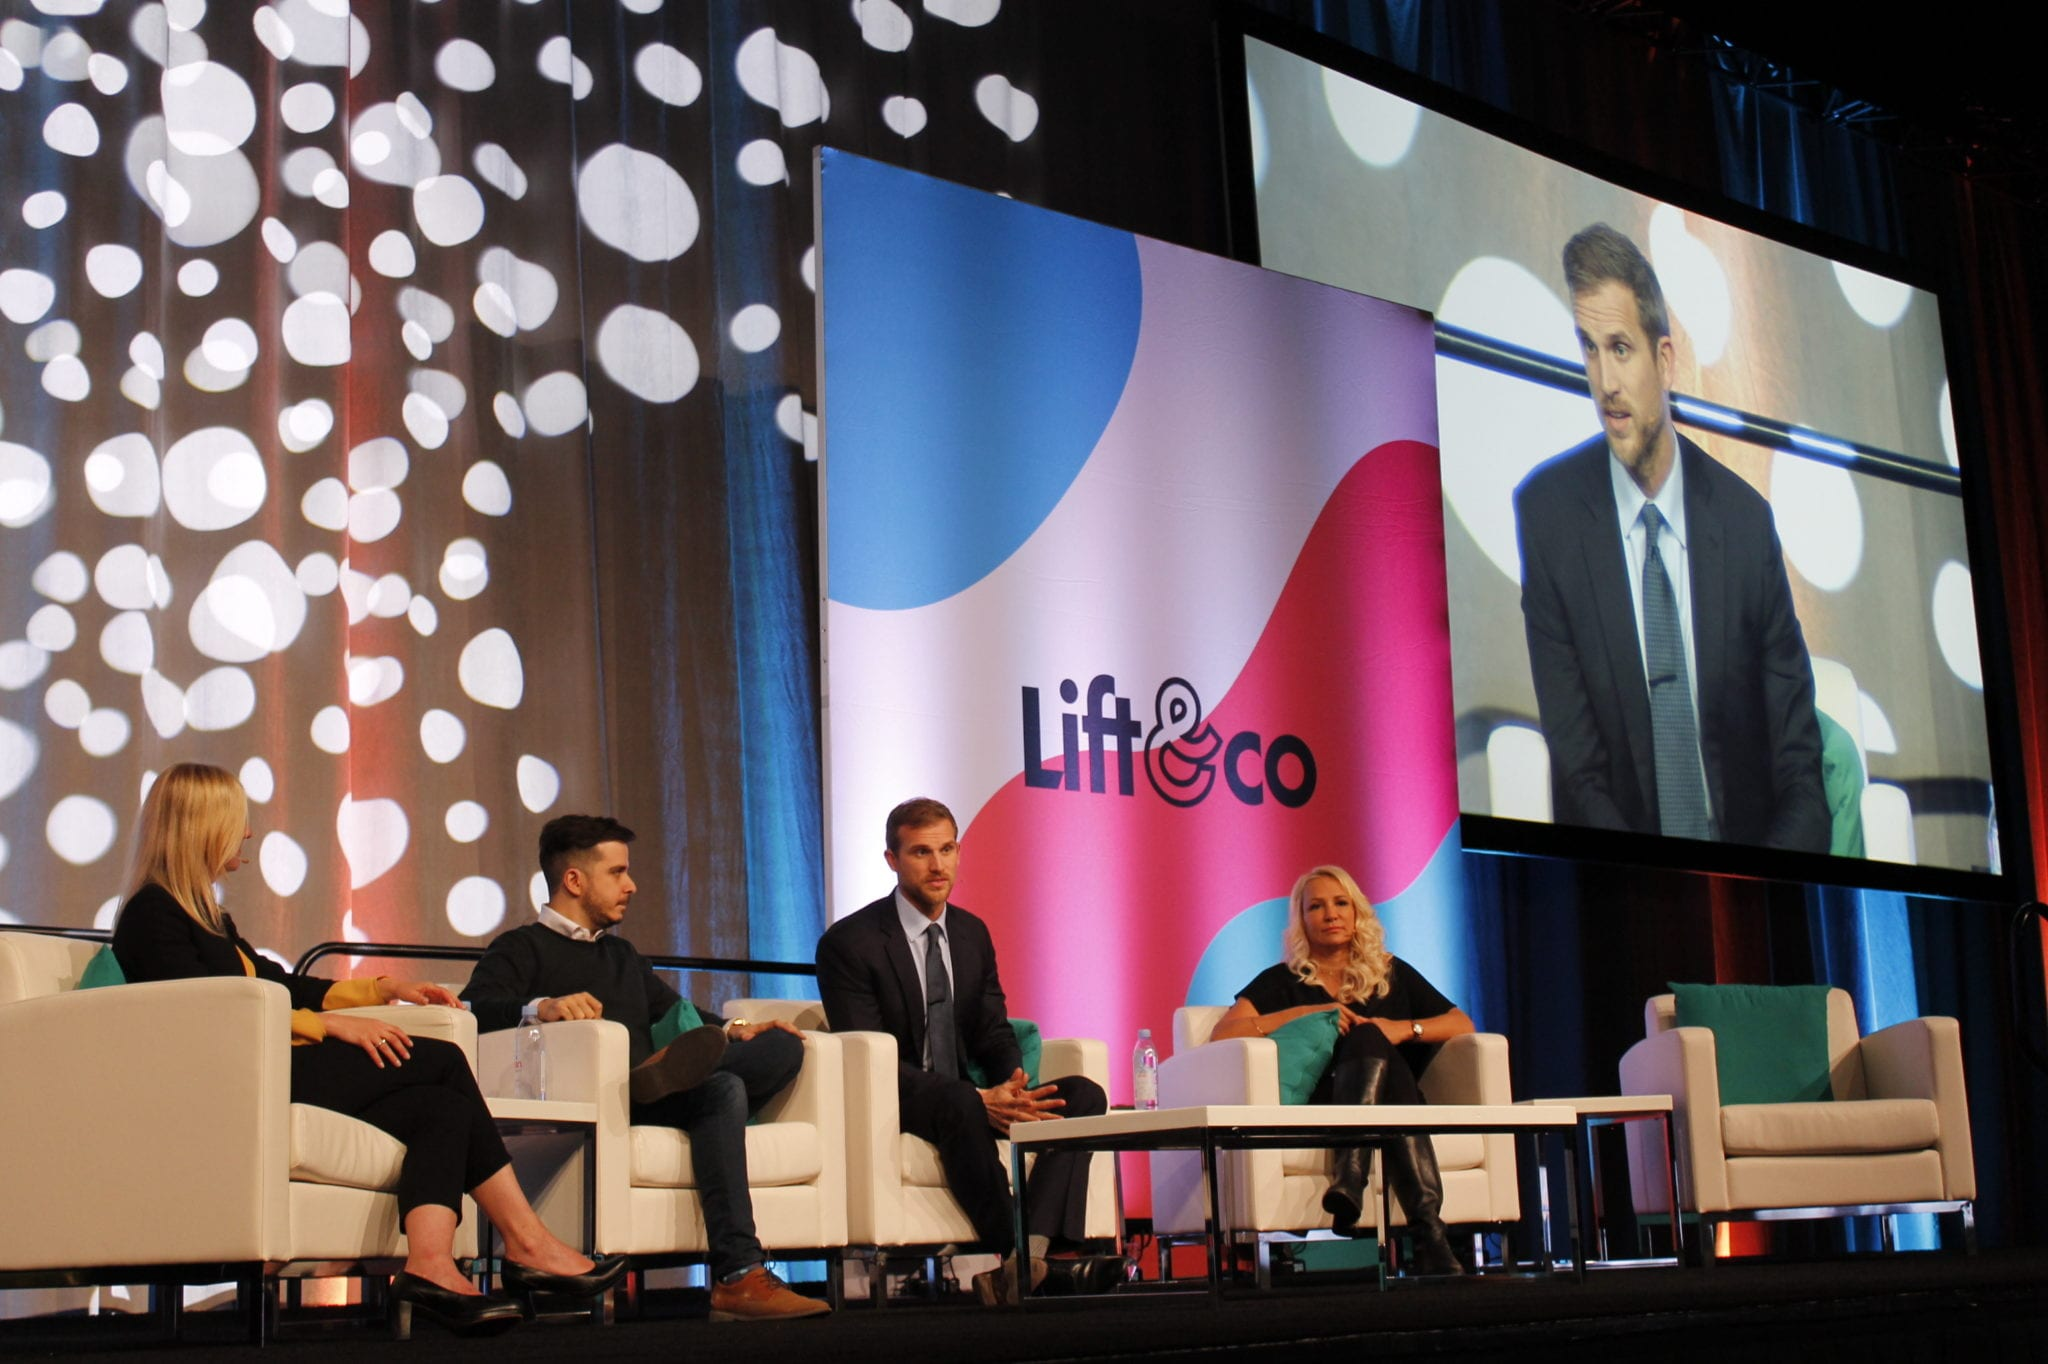 Hang tight, better times are coming: Lift & Co expo day 1